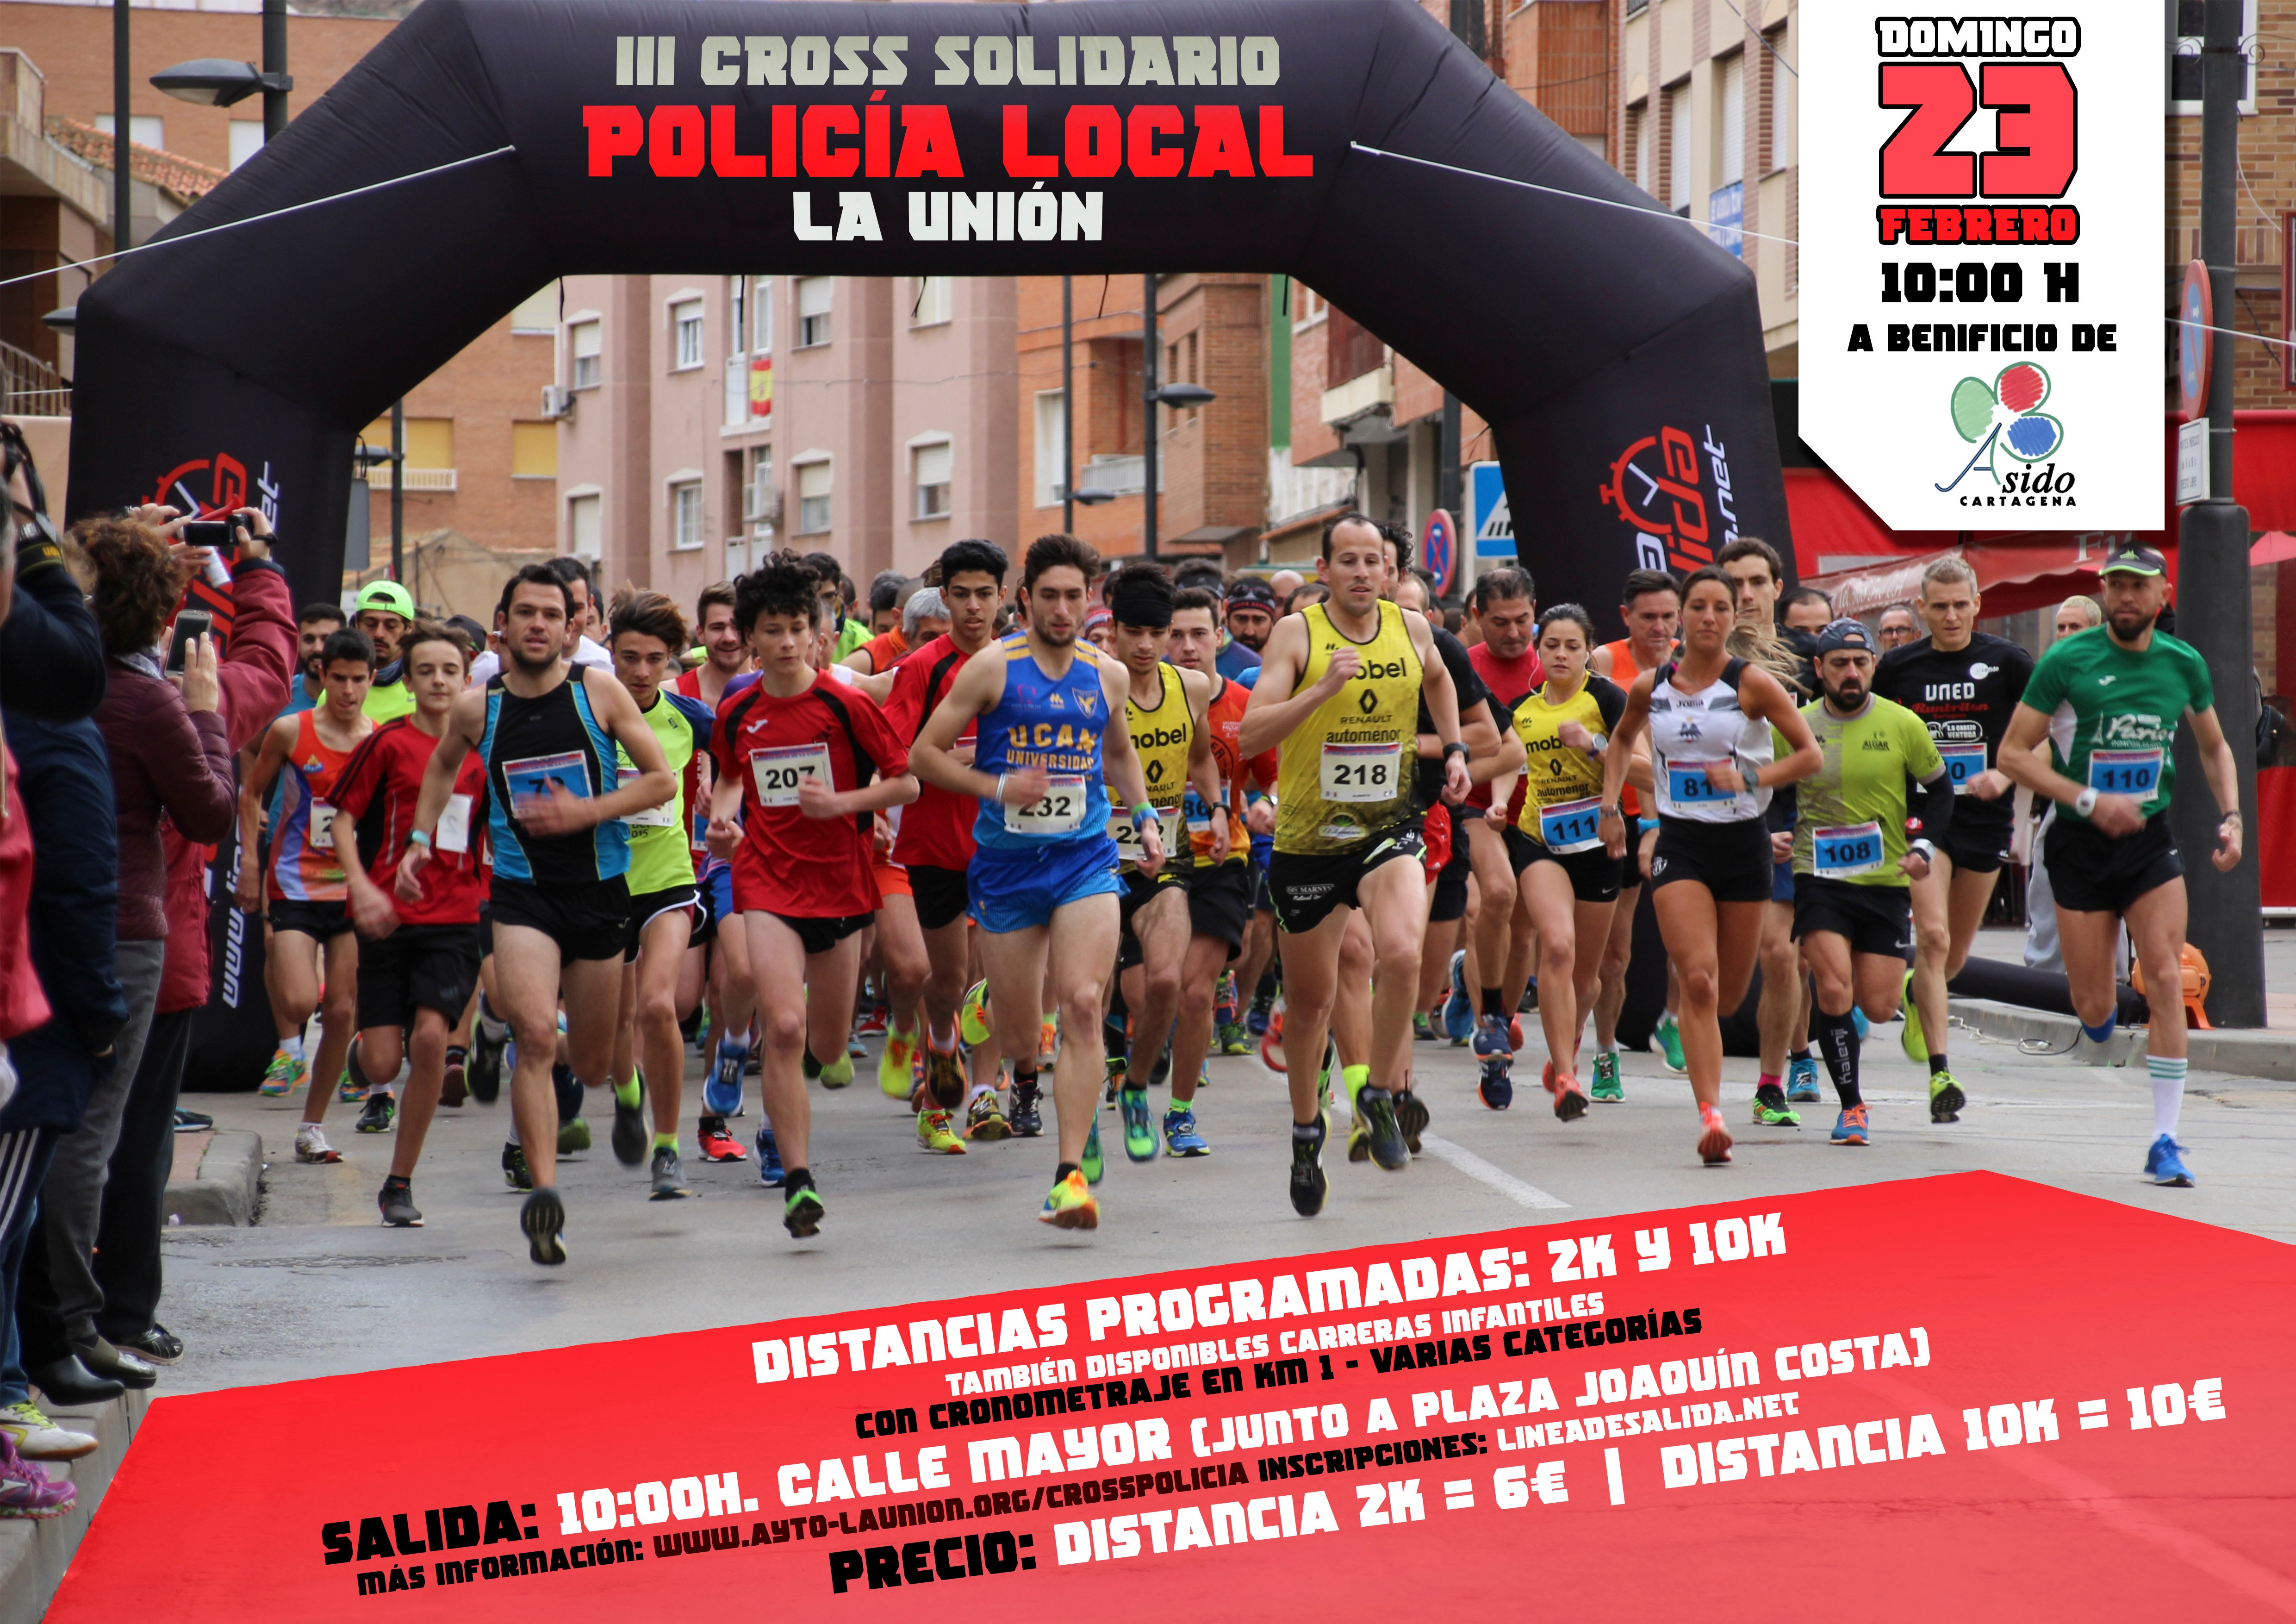 III CROSS SOLIDARIO POLICIA LOCAL LA UNION